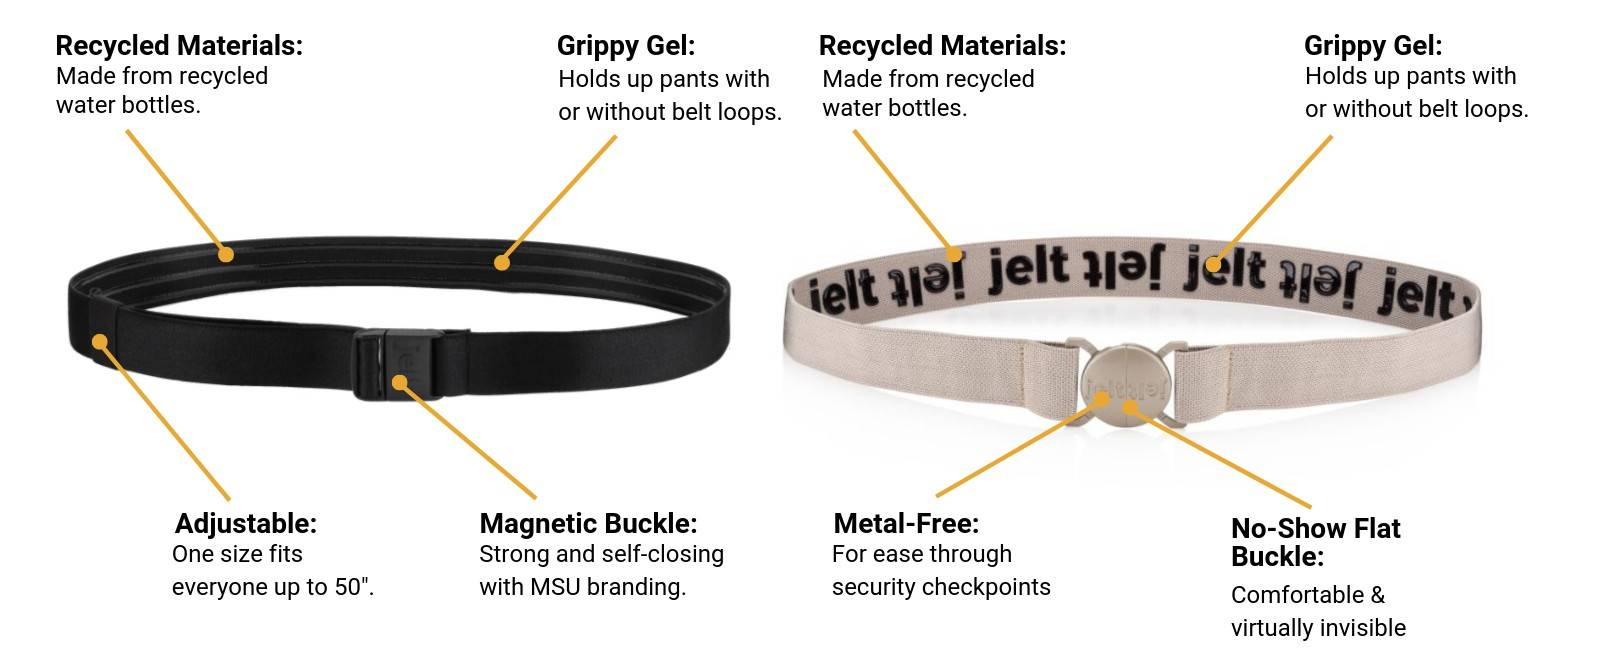 Anatomy of a Jelt Belt: Recycled materials; Adjustable; Magnetic Buckle and Grippy Inner Gel. The JeltX featured a magnetic buckle and the Jelt Original features a metal free flat buckle